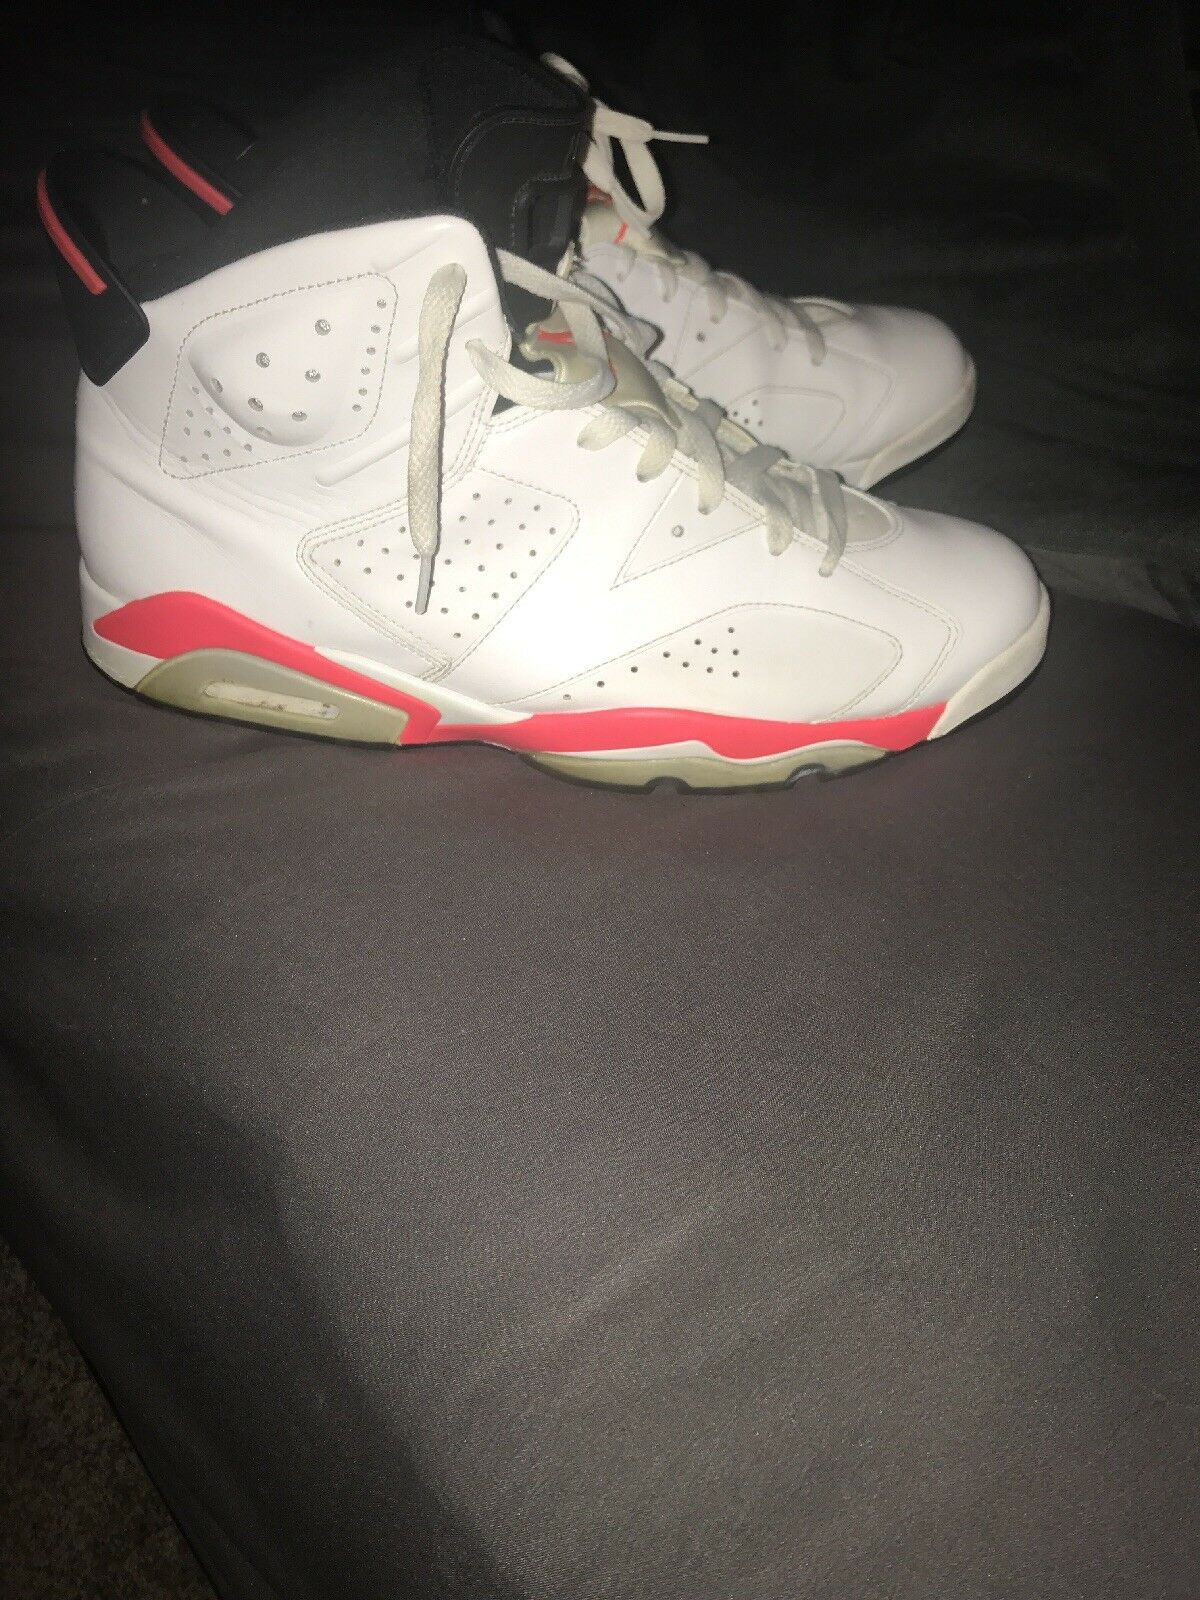 Jordan 6 infrared white size 13 The most popular shoes for men and women